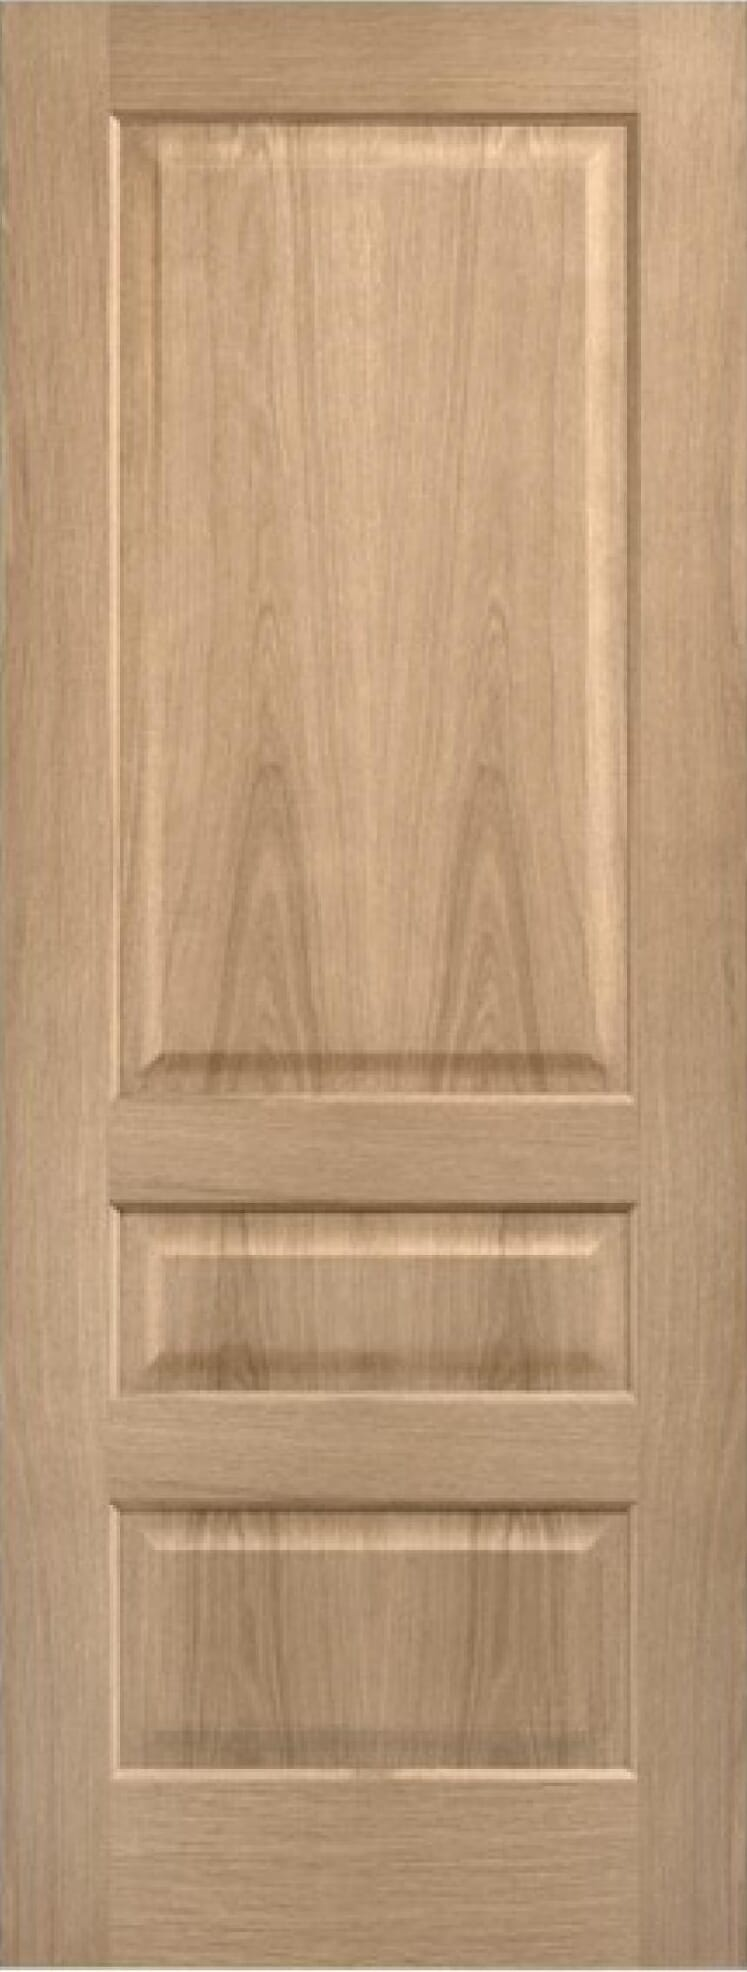 Oak Contemporary 3 Panel Door - Prefinished Image